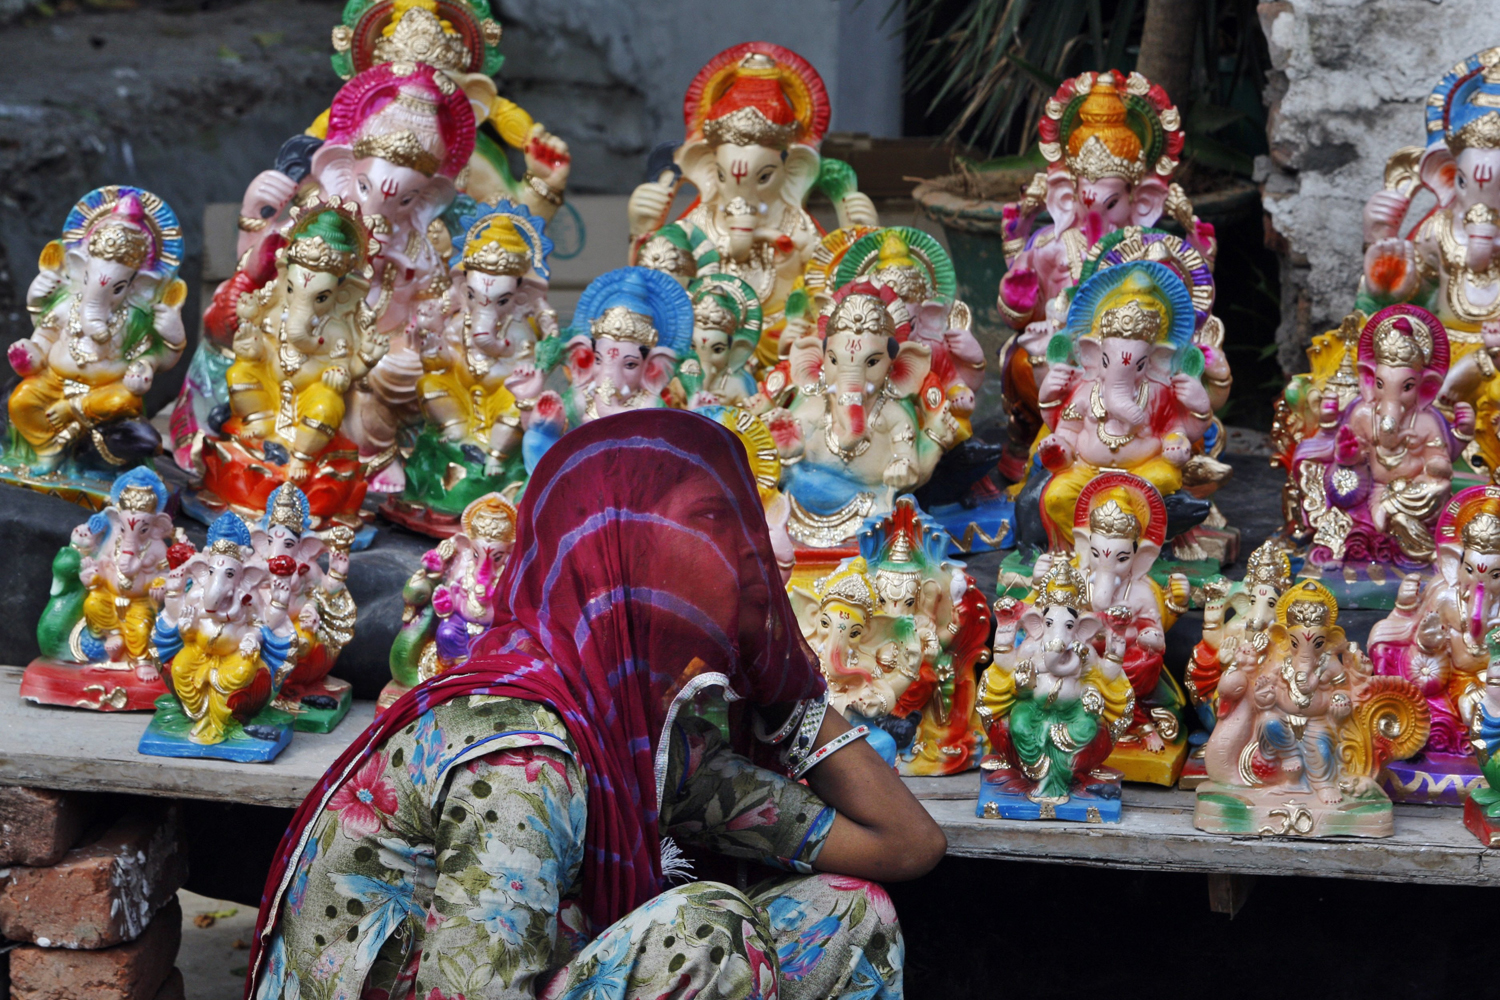 Aug. 29, 2014. An Indian vendor awaits customers as she sells idols of elephant-headed Hindu god Ganesh on the first day of the Ganesh Chaturthi festival in Jammu, India.